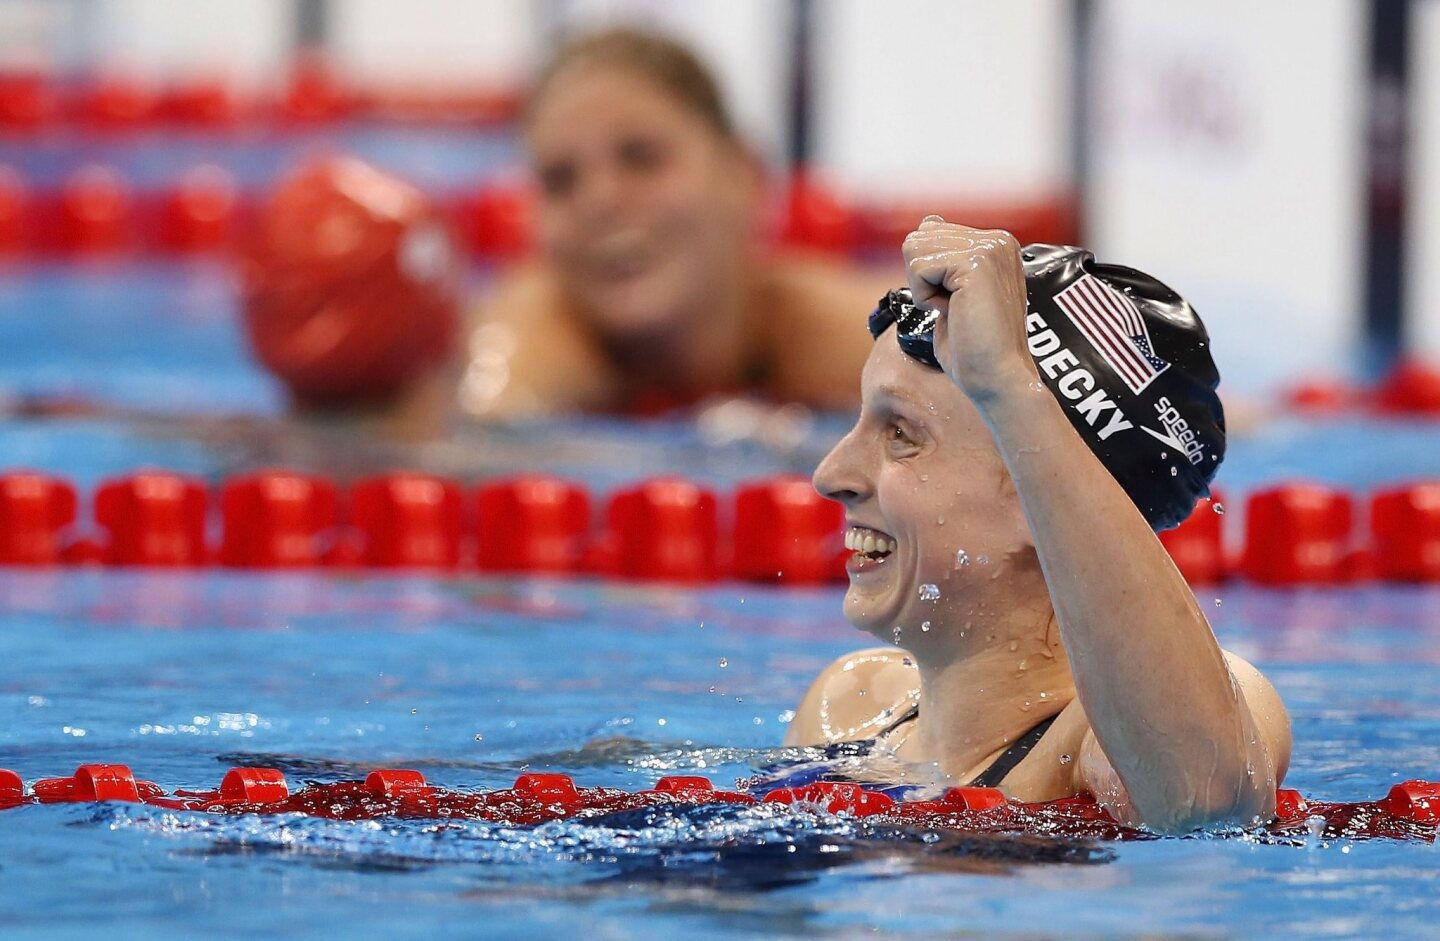 Katie Ledecky of USA celebrates after winning in the women's 800m Freestyle Final race of the Rio 2016 Olympic Games Swimming events at Olympic Aquatics Stadium at the Olympic Park in Rio de Janeiro, Brazil.